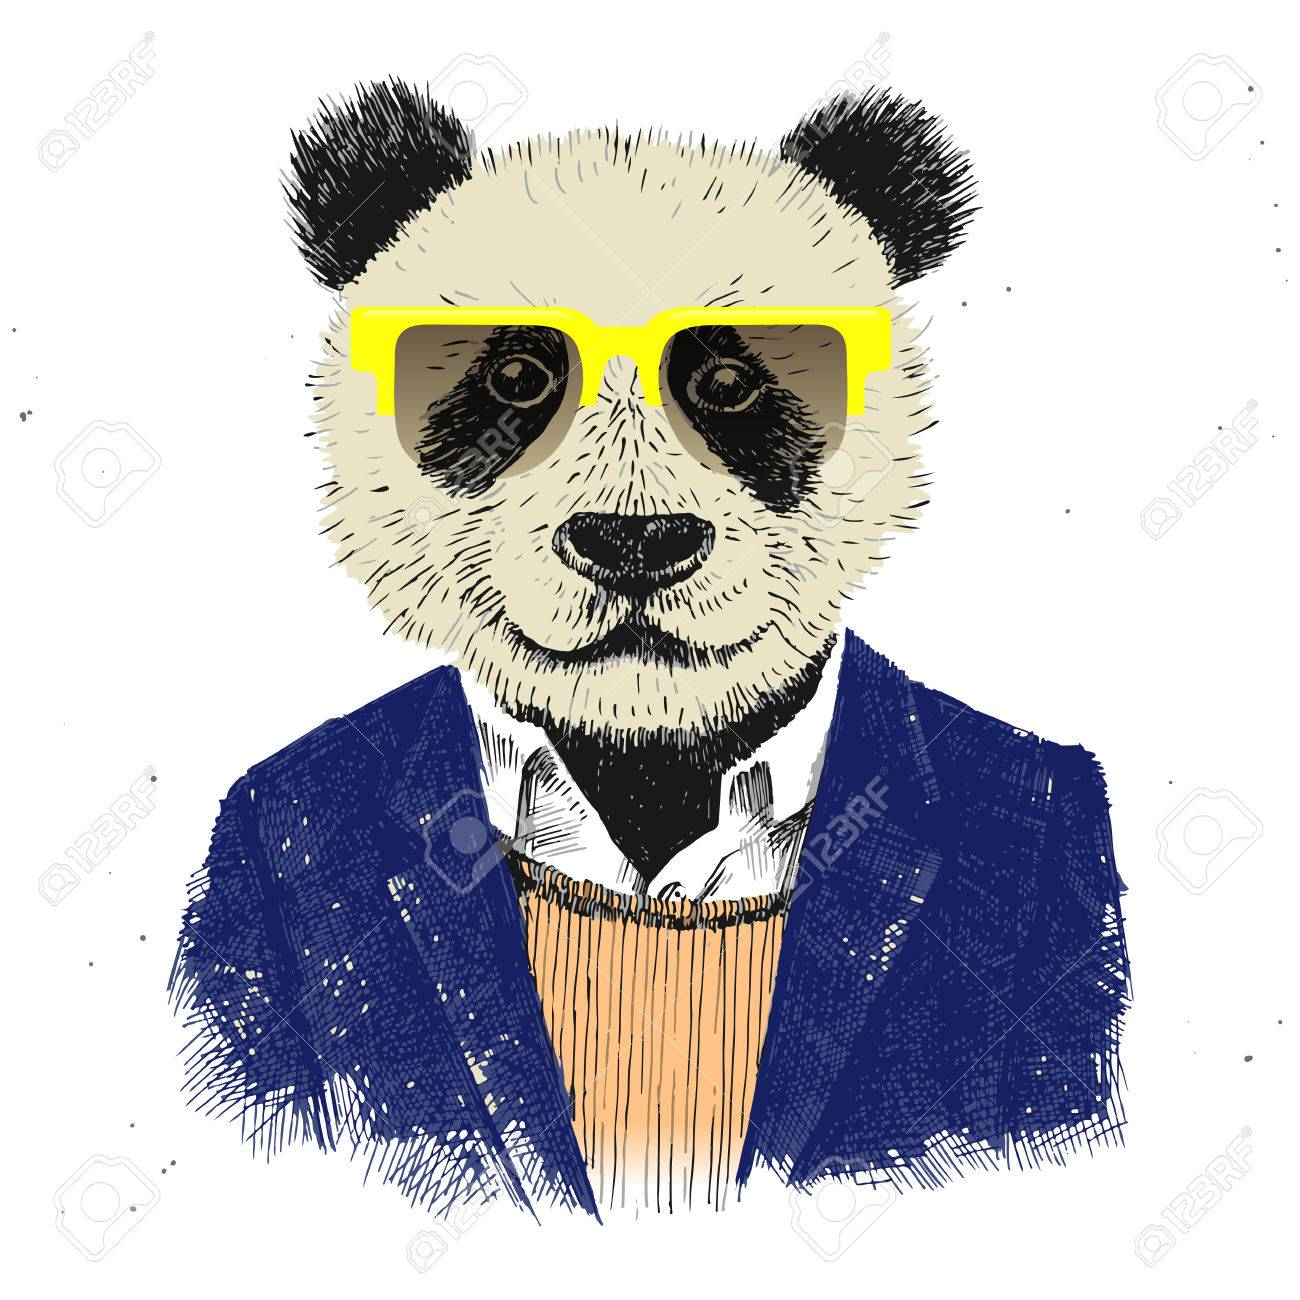 dressed up hipster panda in glasses - 44206031